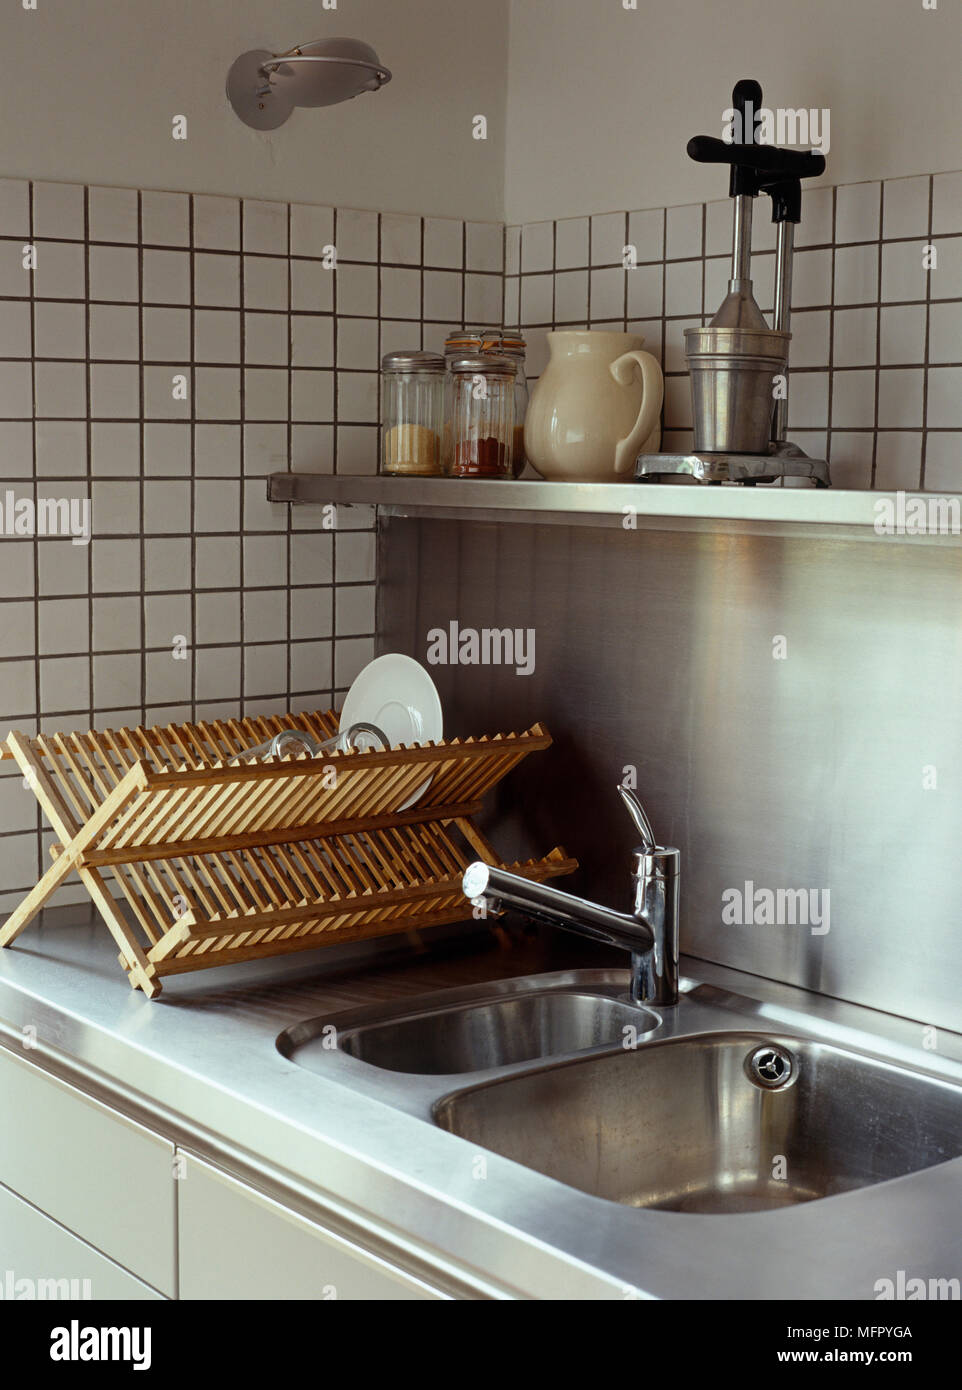 Kitchen sink and plate drainer with stainless steel splashback Stock ...